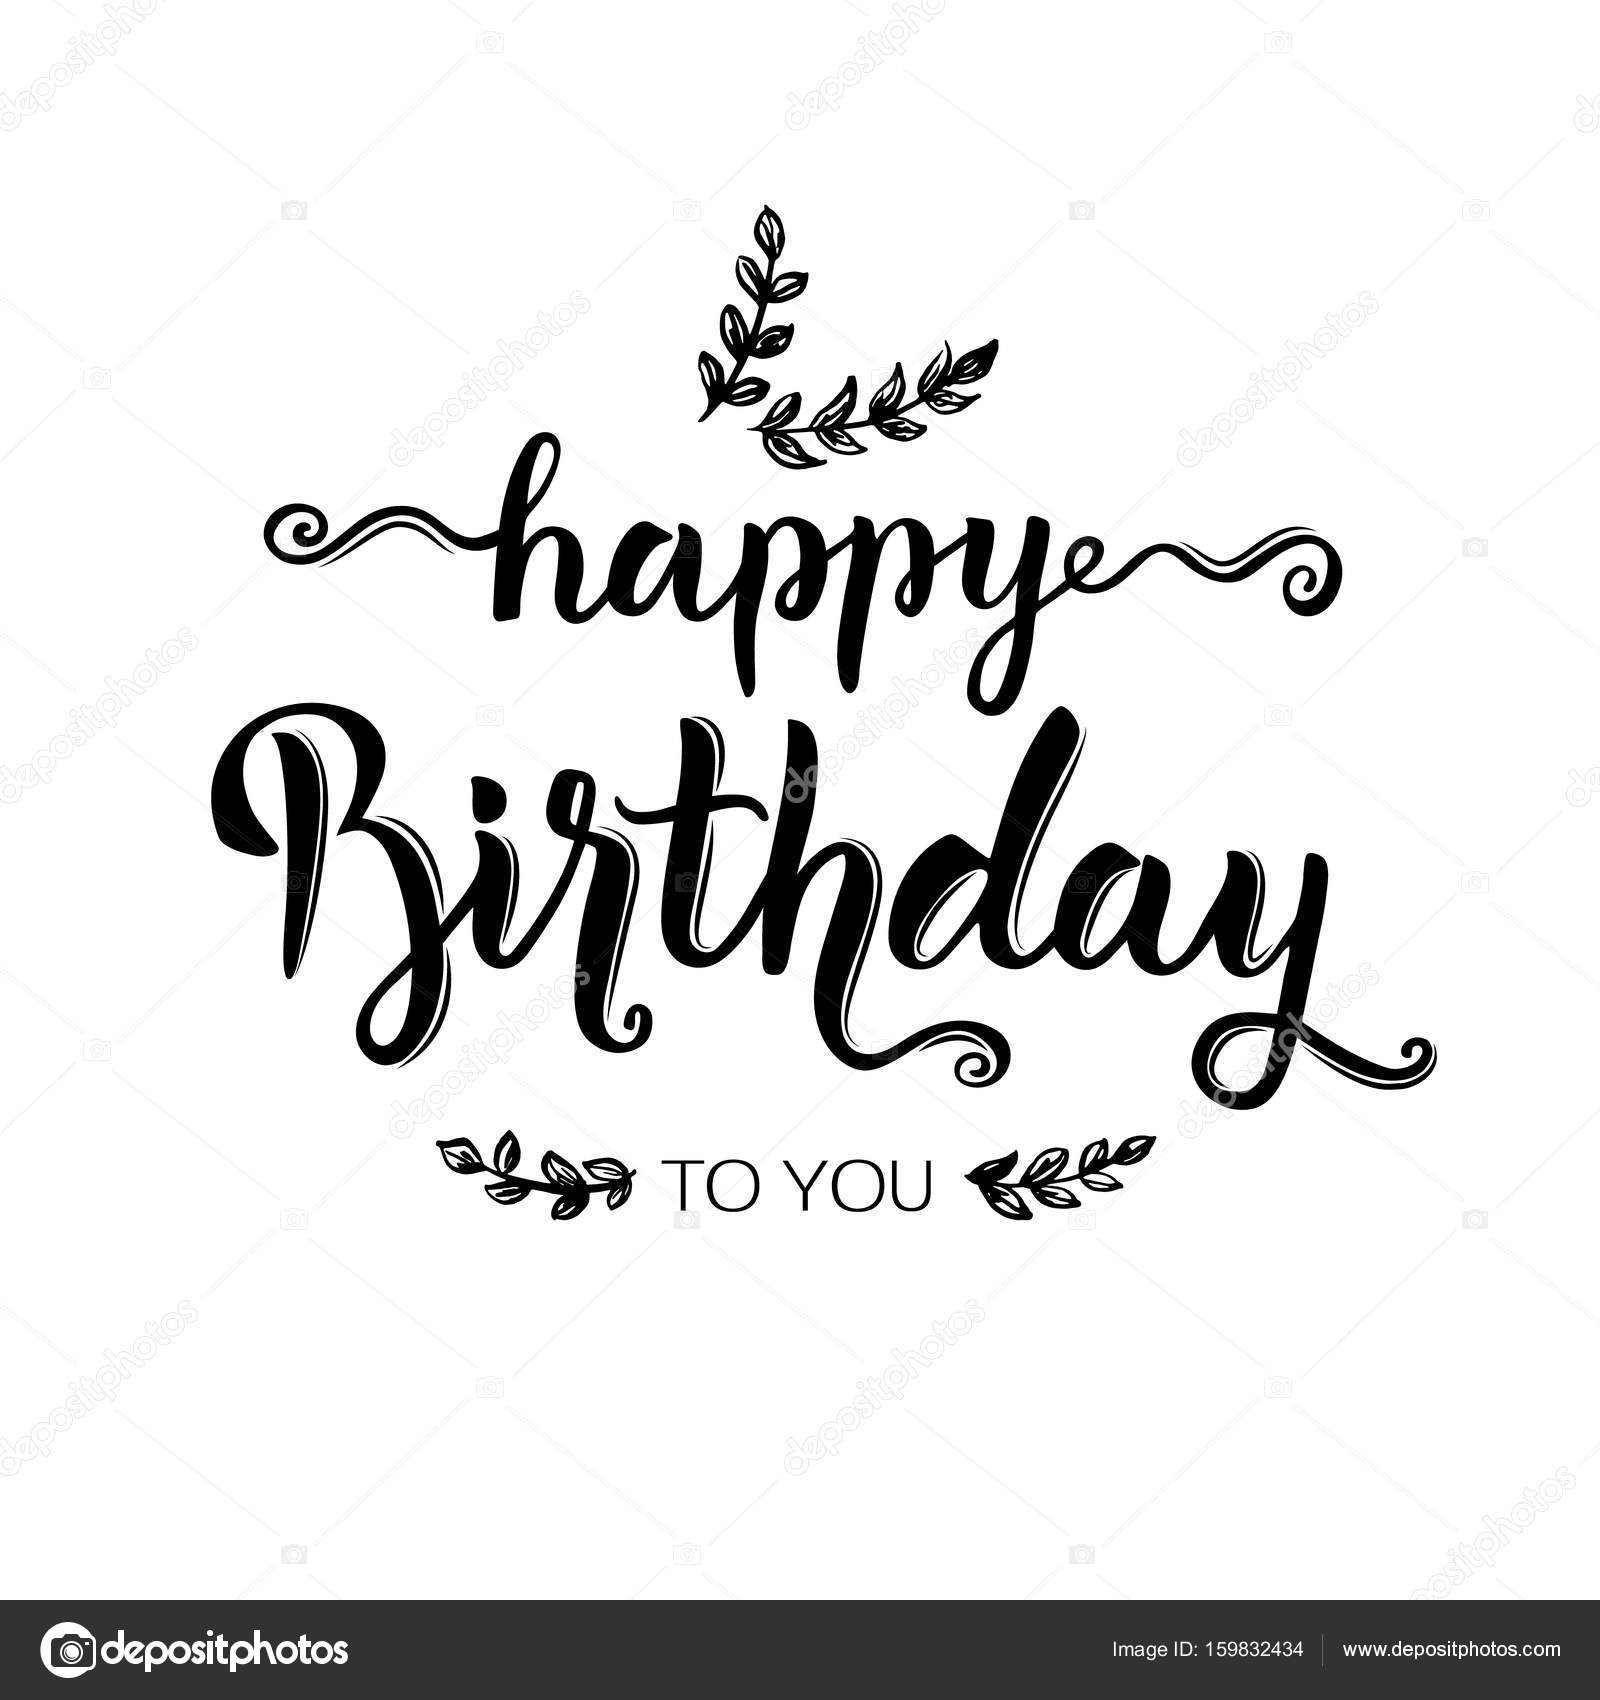 Happy birthday hand lettering brush ink calligraphy birthday happy birthday hand lettering brush ink calligraphy birthday inscription isolated on white background for greeting card vector illustration bookmarktalkfo Choice Image